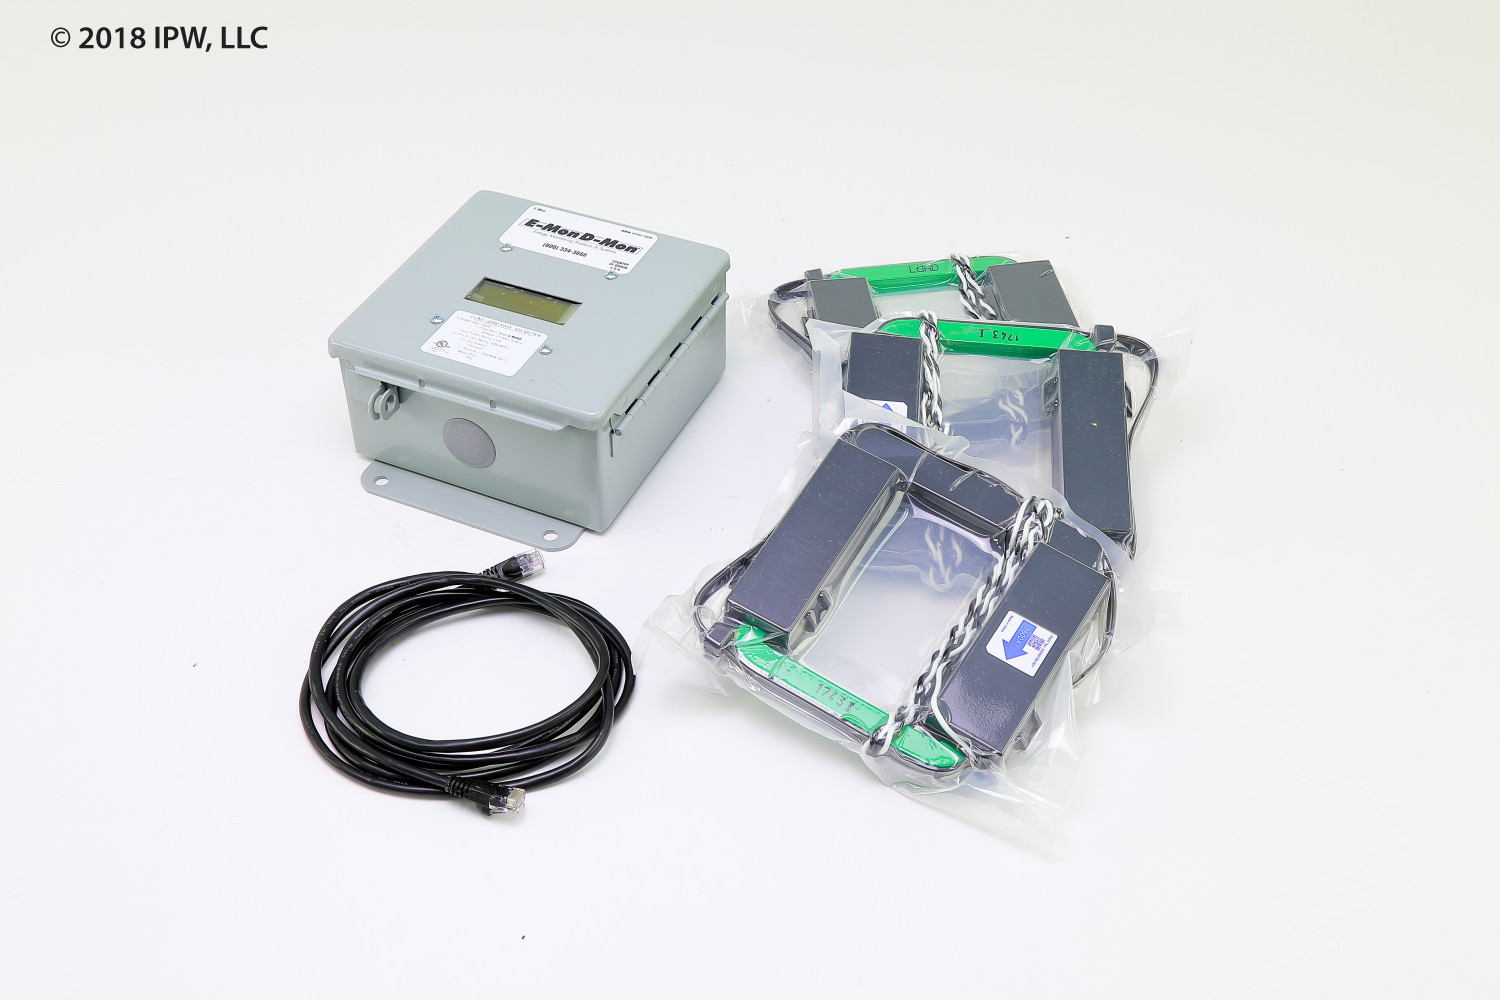 Honeywell E-MON Meters E20-4801600J-D-KIT Class2000 480v 1600a Meter